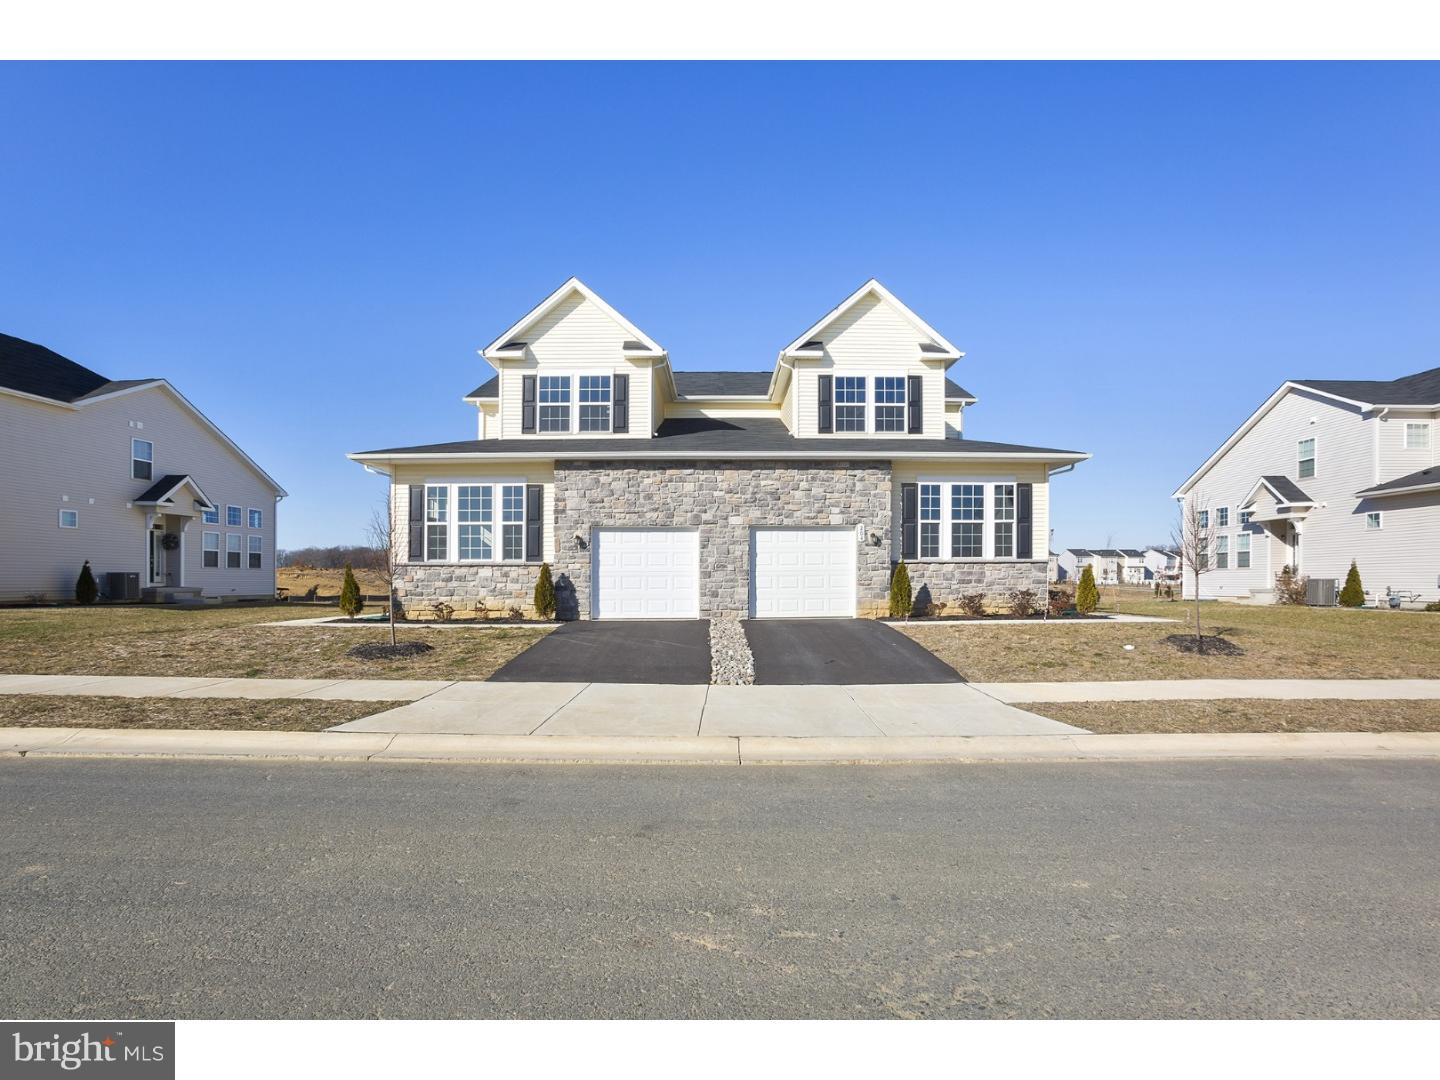 This is a popular Ridgeway Design home that is brand new and ready for you to move into July 2019. The Hyett's Crossing community is home to over 70 acres of open space. For a tour of this home please visit our Welcome Home Center which is open daily from 10am-6pm but appointments are highly encouraged. Pictures are of a Ridgeway design, just not this actual home and are for representation purposes.